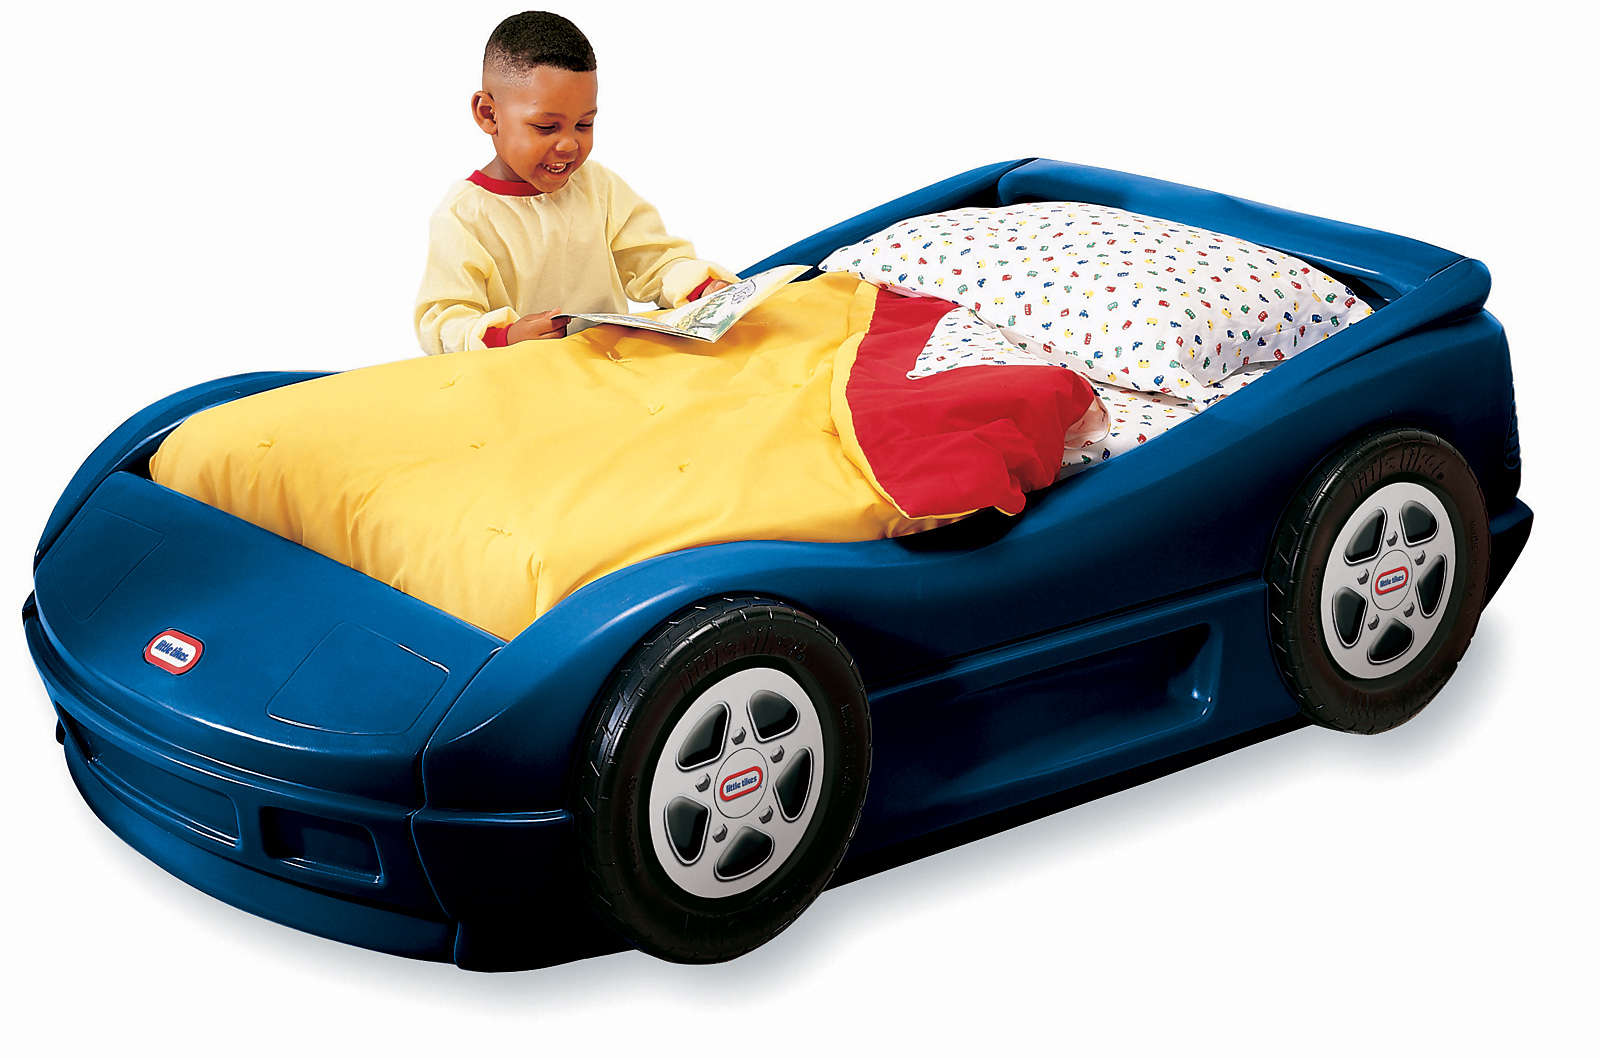 Little Tikes Toddler Car Bed Excellent Little Tikes